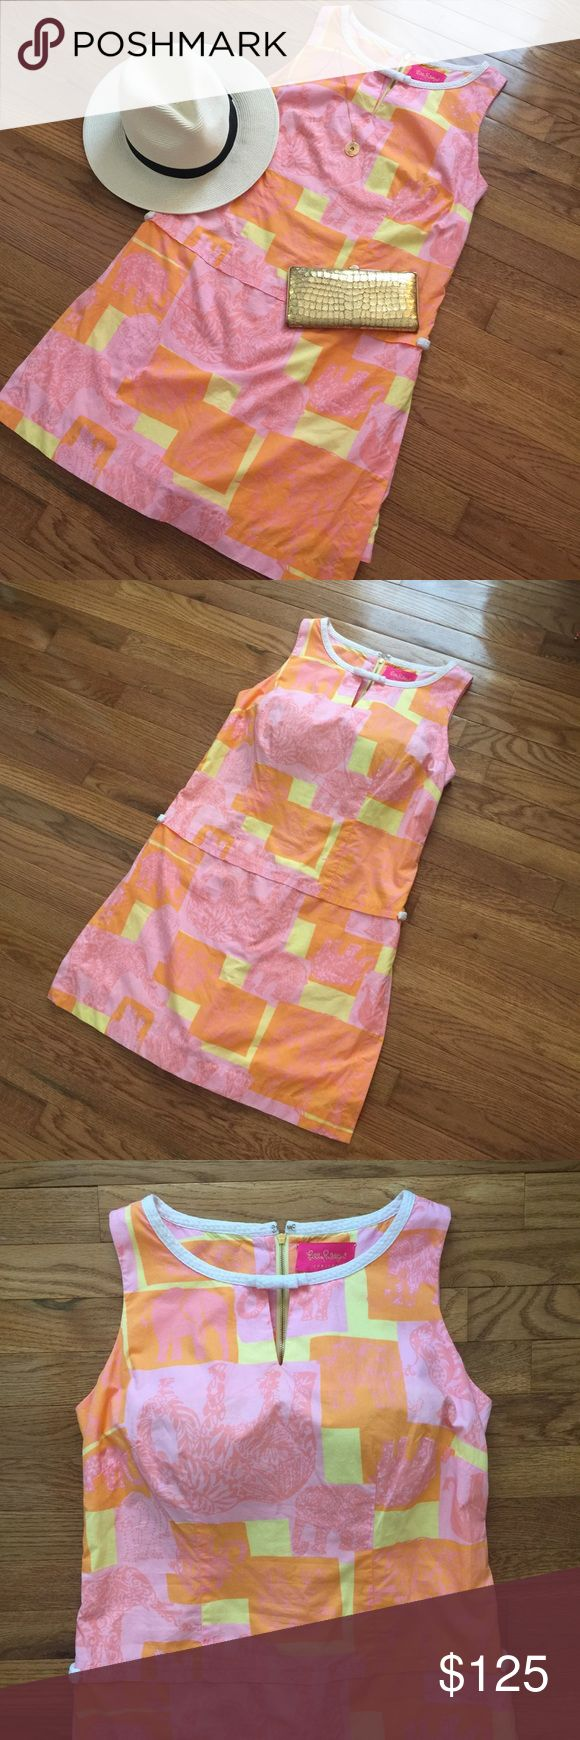 Lilly Pulitzer Jubilee pink dress skort dress Lilly Pulitzer Jubilee pink dress skort dress, it has shorts underneath. Size 10 in great condition only worn a couple times. Pink, yellow, orange colors. Very light and comfy, perfect for this Summer. Open to offers! Check out my closet for more Lilly, Tory Burch items, etc! This listing is for the dress only. Lilly Pulitzer Dresses